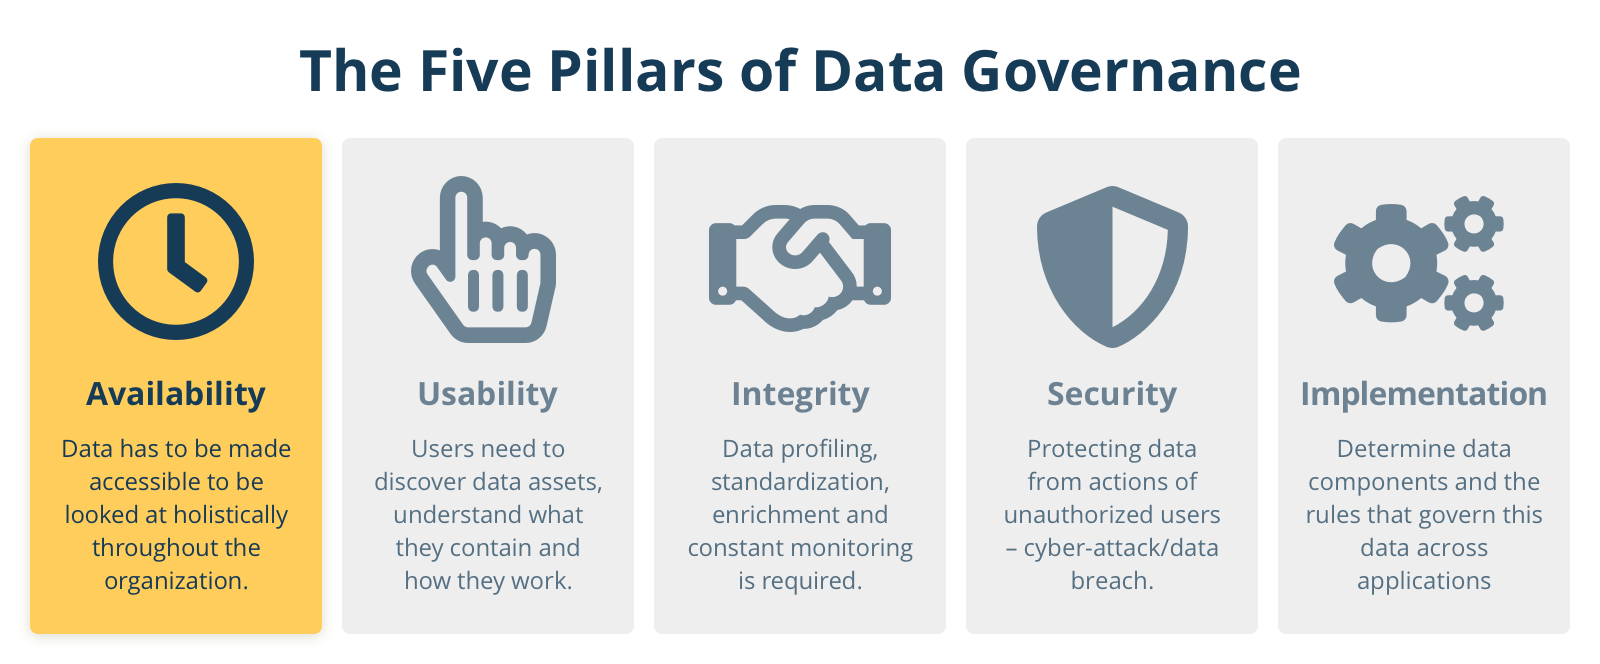 Five Pillars: Availability